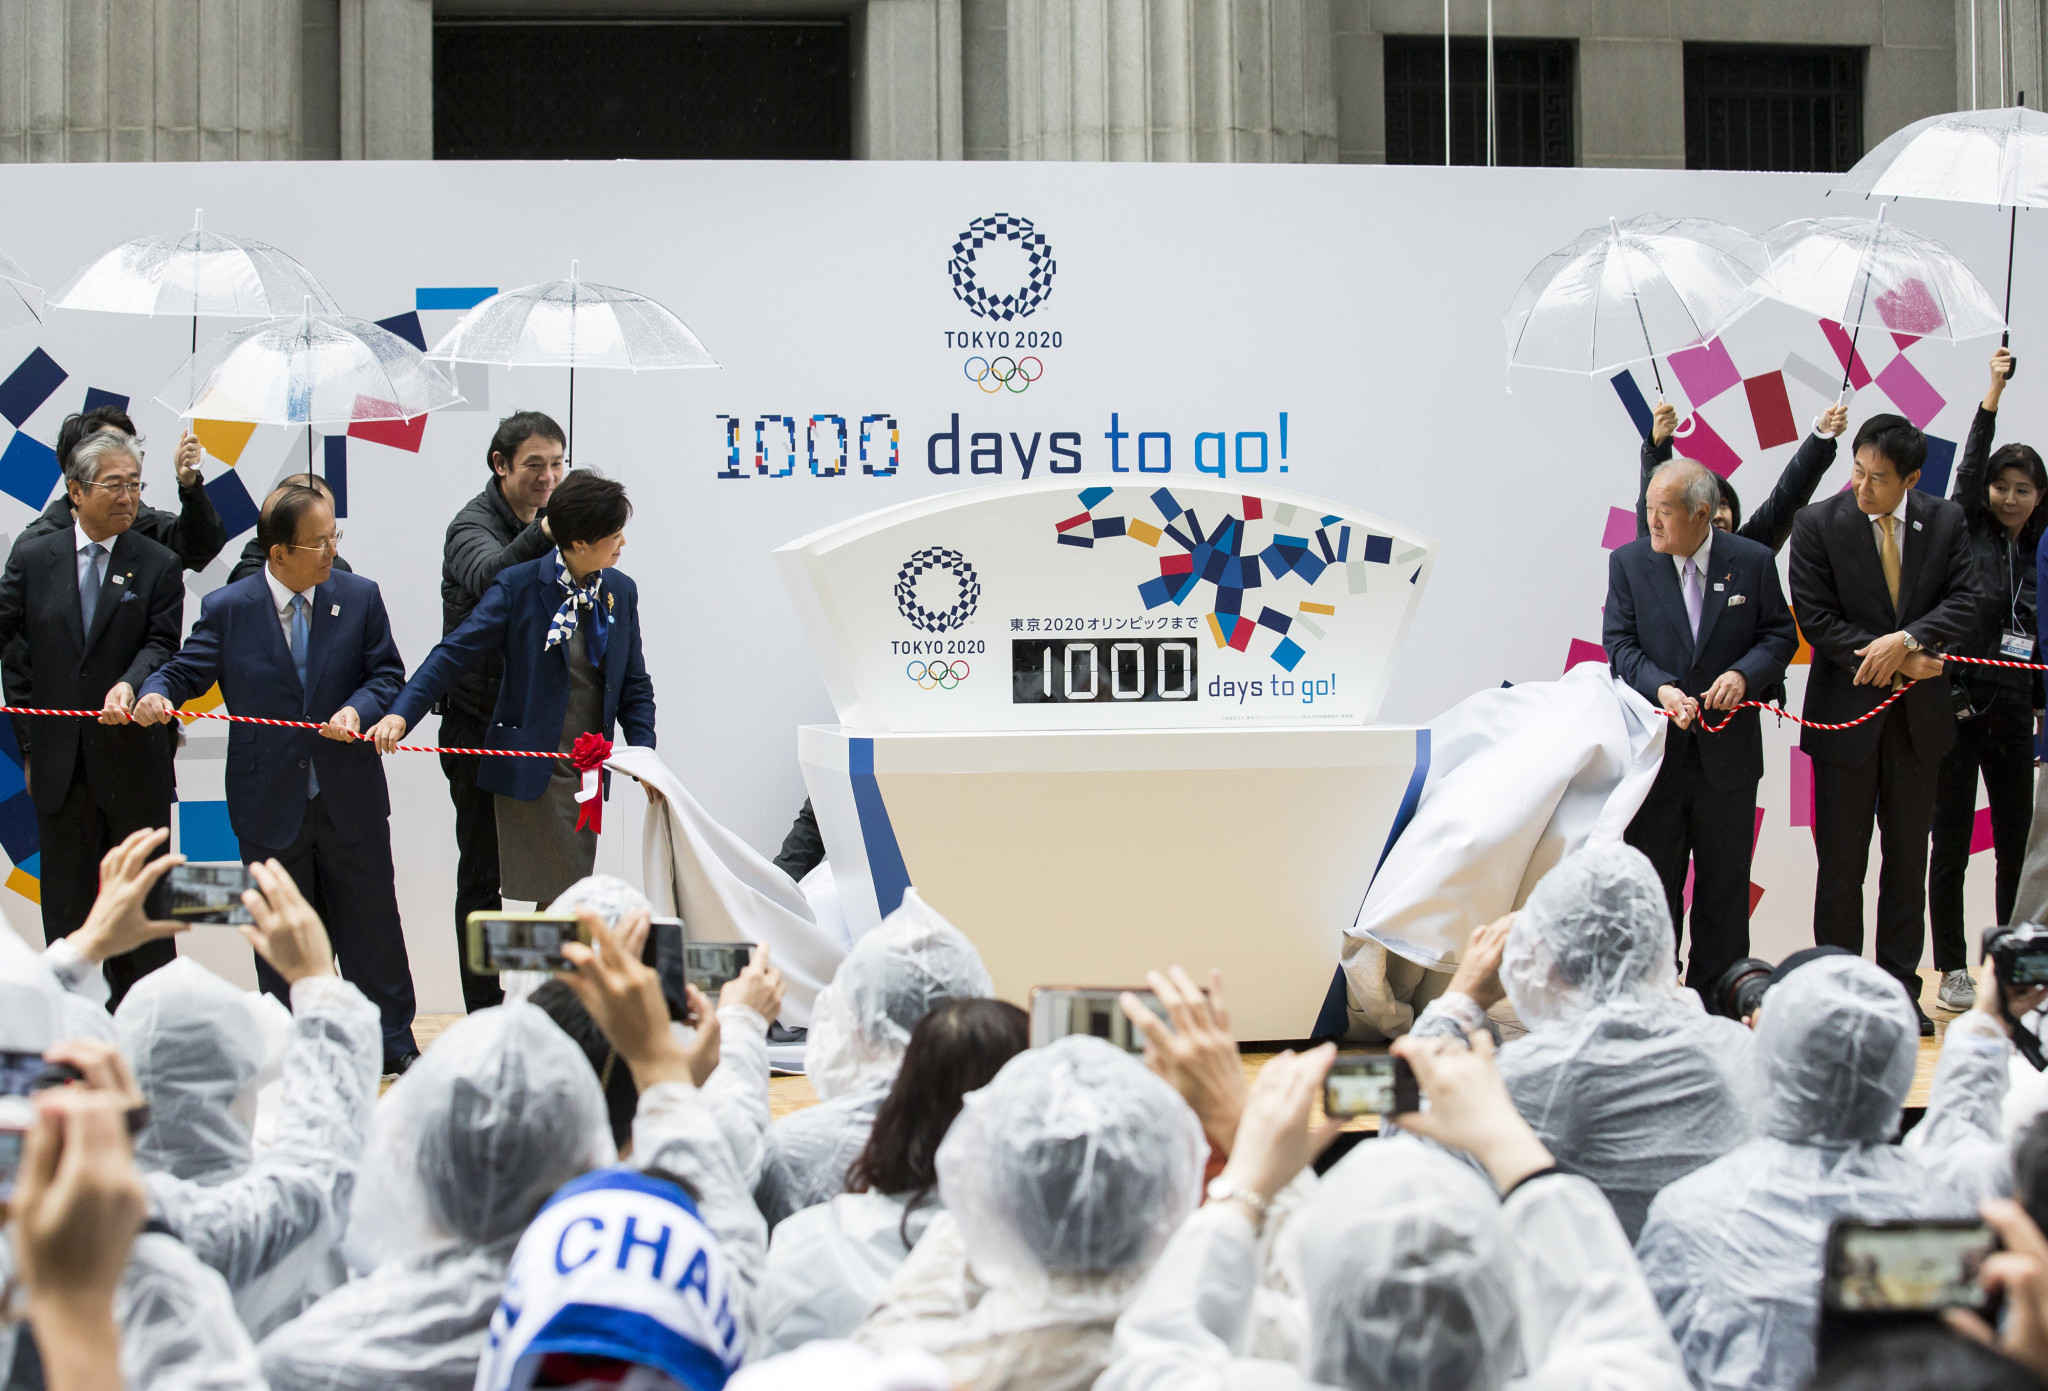 Tokyo 2020 marks 1,000 days until start of Olympic Games with launch of countdown clock